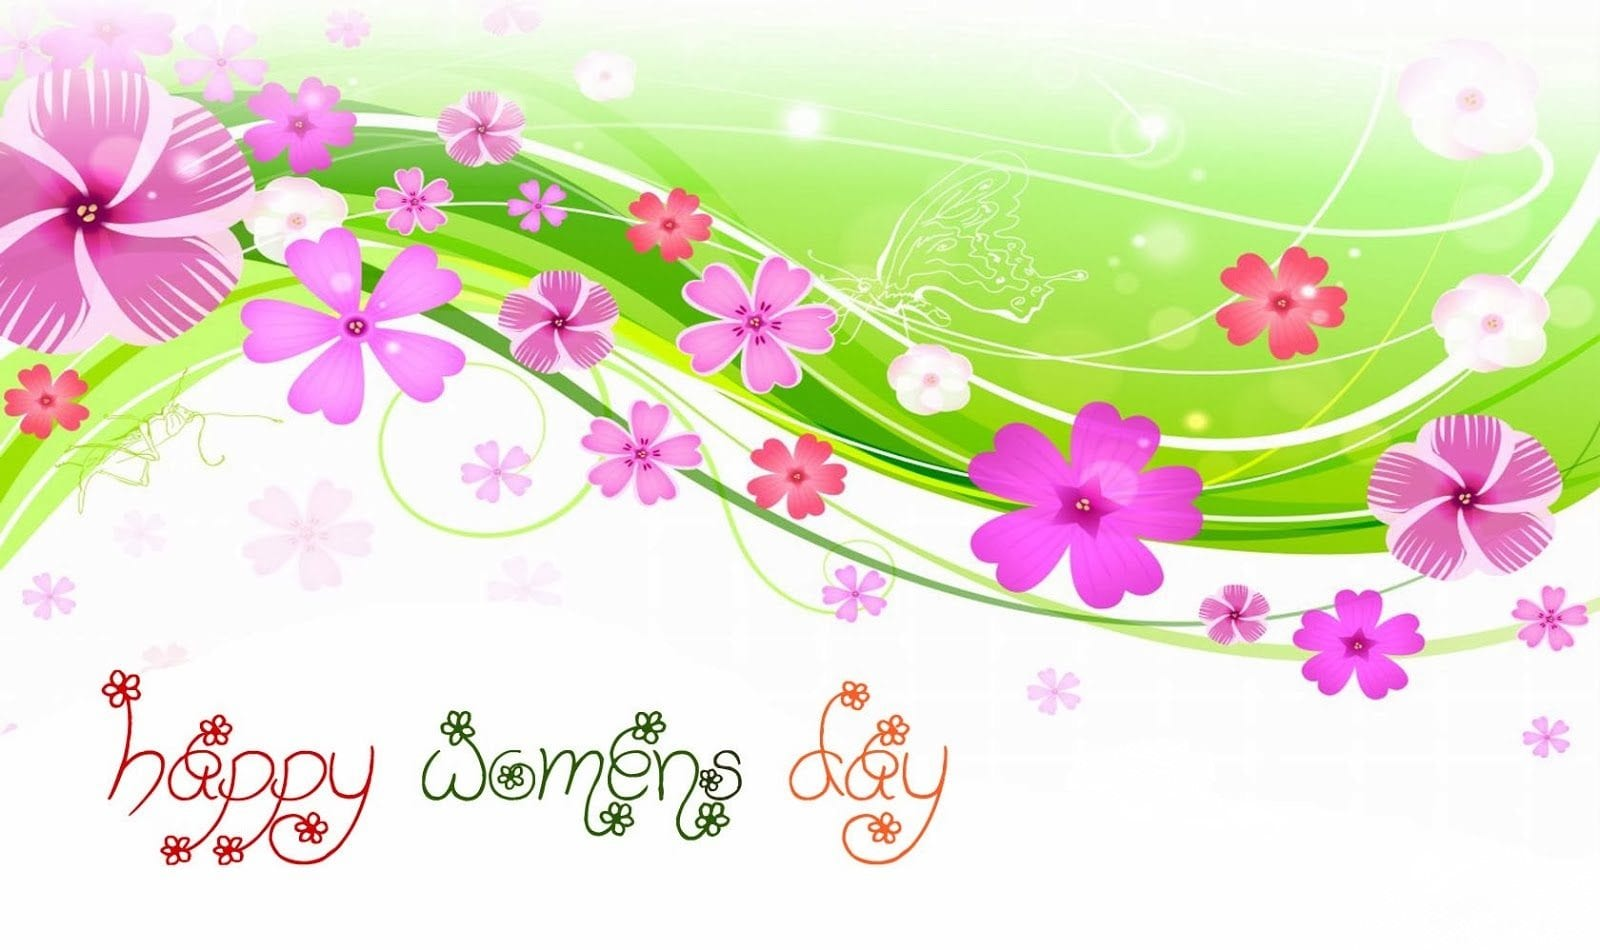 happy-women's-day-wishes-sms-messages-with-greeting-cards